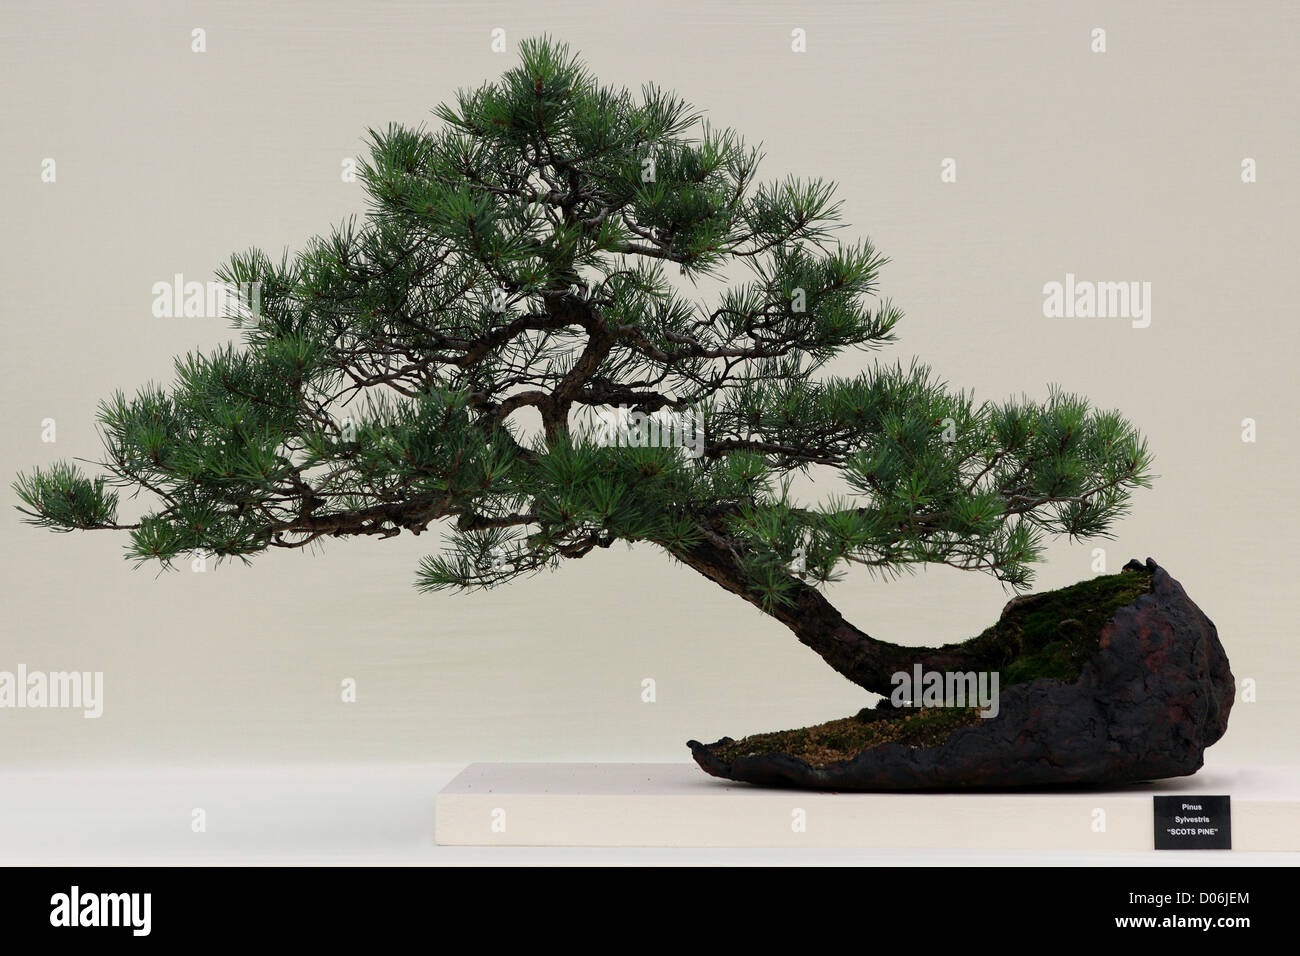 Scots Pine Bonsai High Resolution Stock Photography And Images Alamy